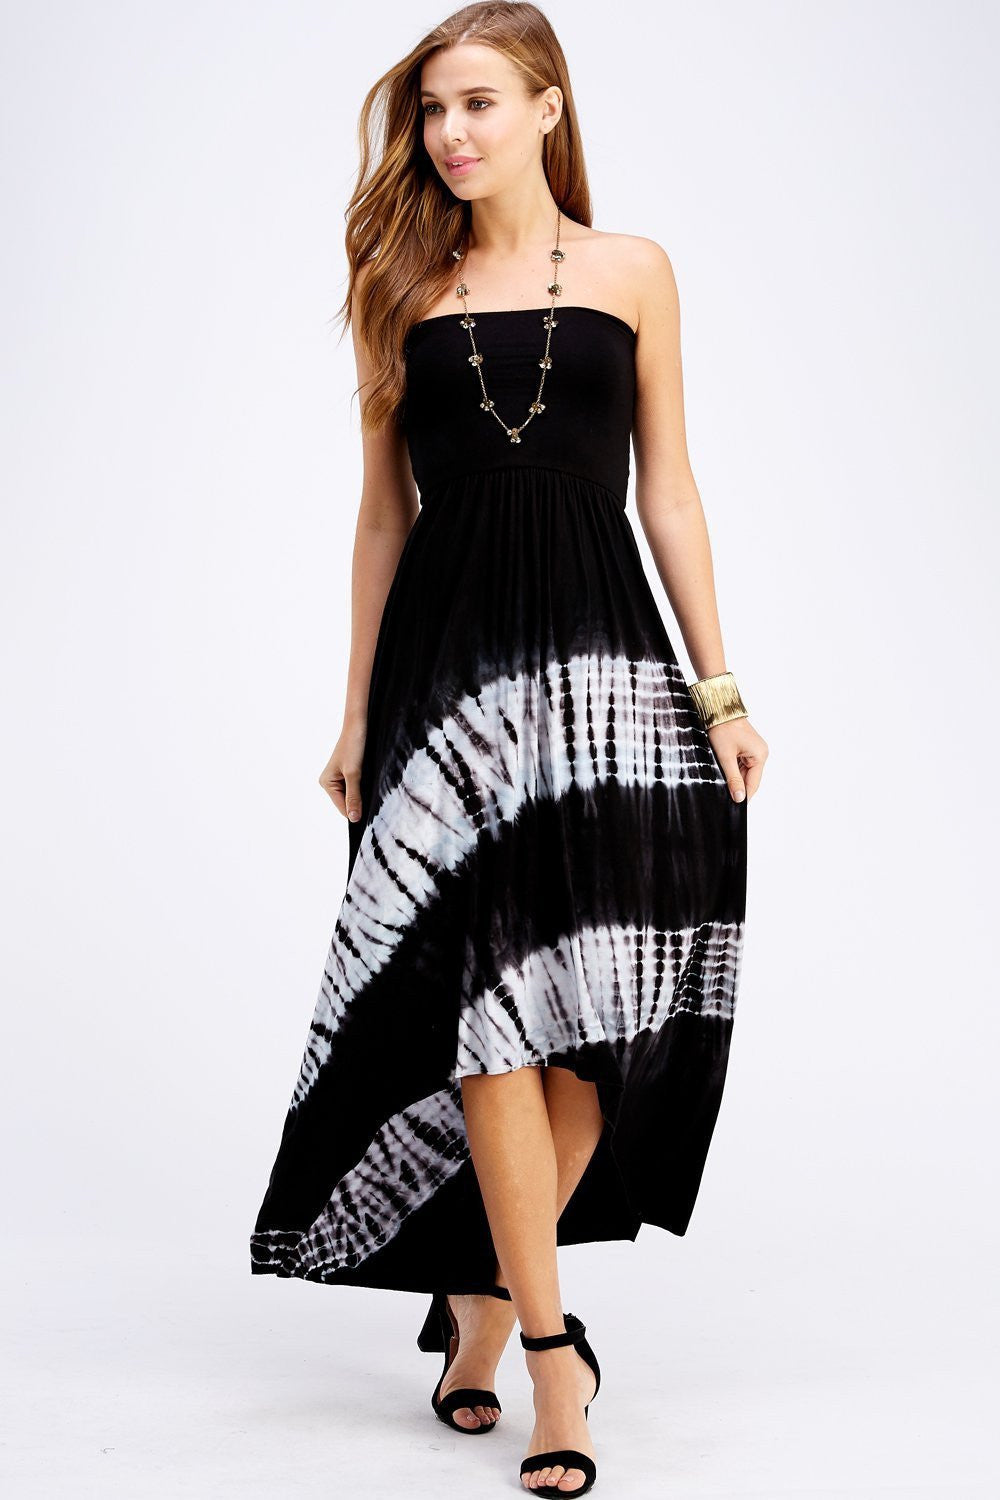 Wholesale Clothing, Online Wholesale Clothing, Women Clothing, Bohemian, Free People, tiedye, specialty wash, wholesale seller, wholesale women clothing shop, gypsy look, USA made, URBAN X APPAREL-DRESSES-UDR3084BW, fashiontrend2019